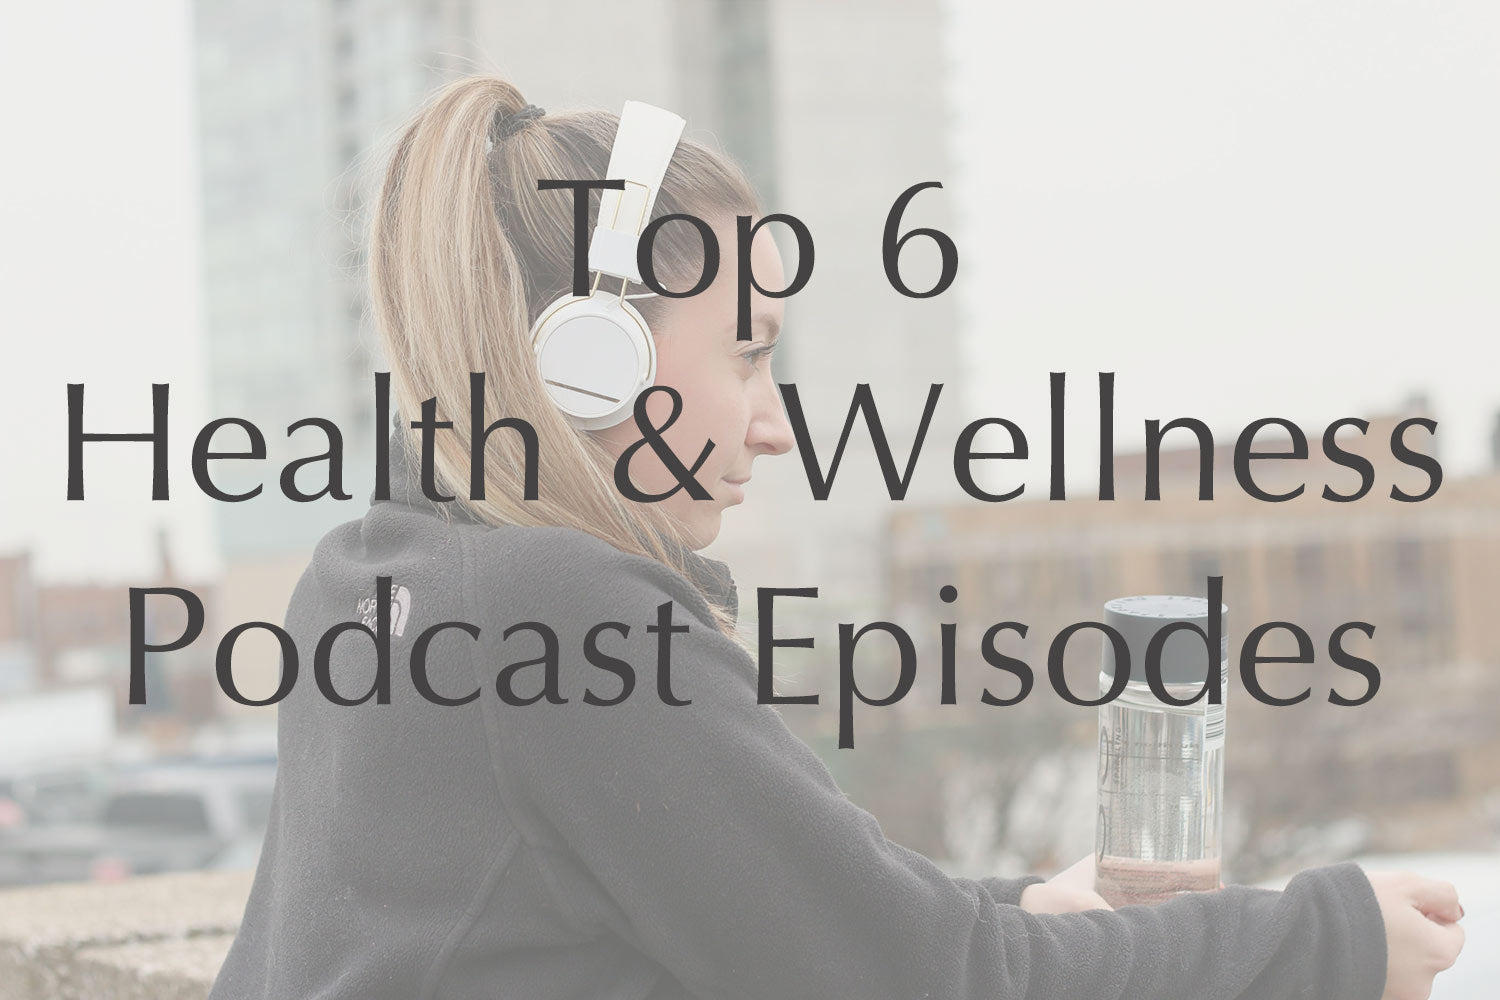 Top 6 Health & Wellness Podcast Episodes to Add to Your Playlist